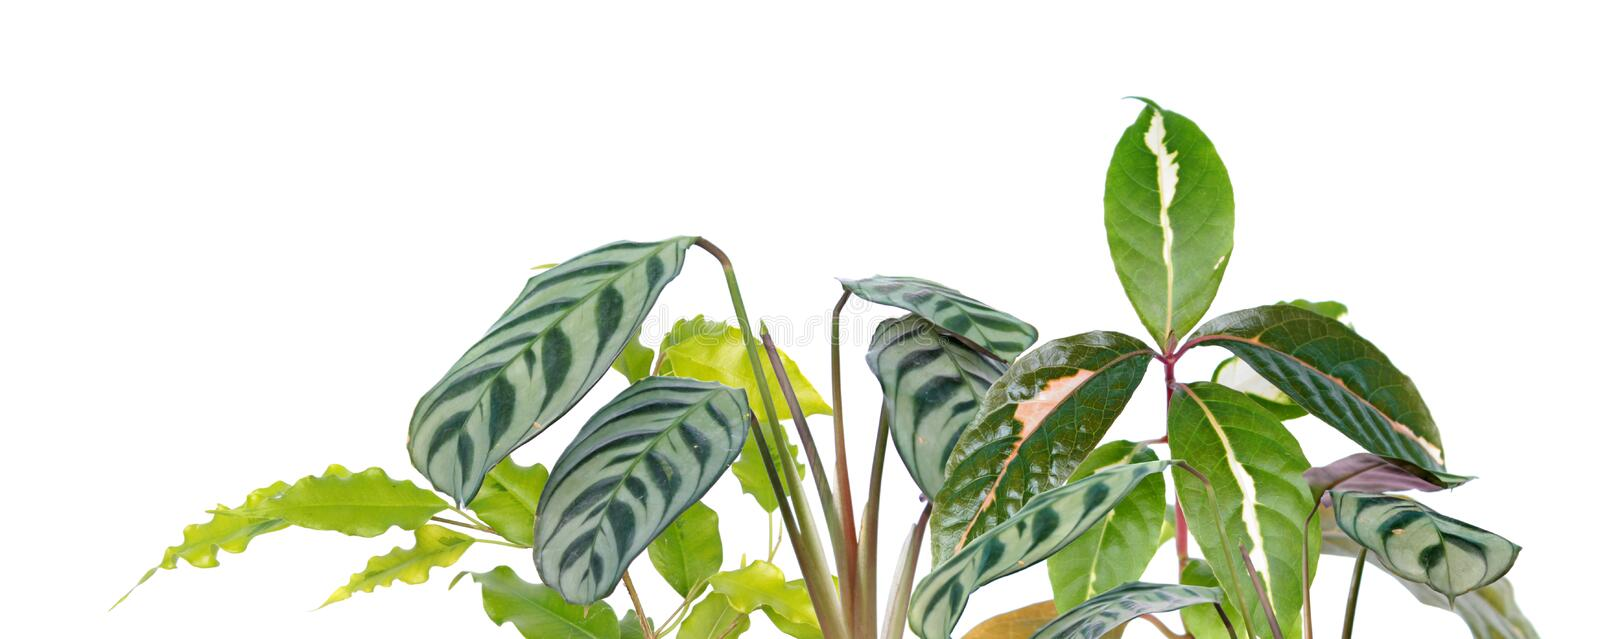 Tropical plant border with different exotic plants isolated on white background royalty free stock images